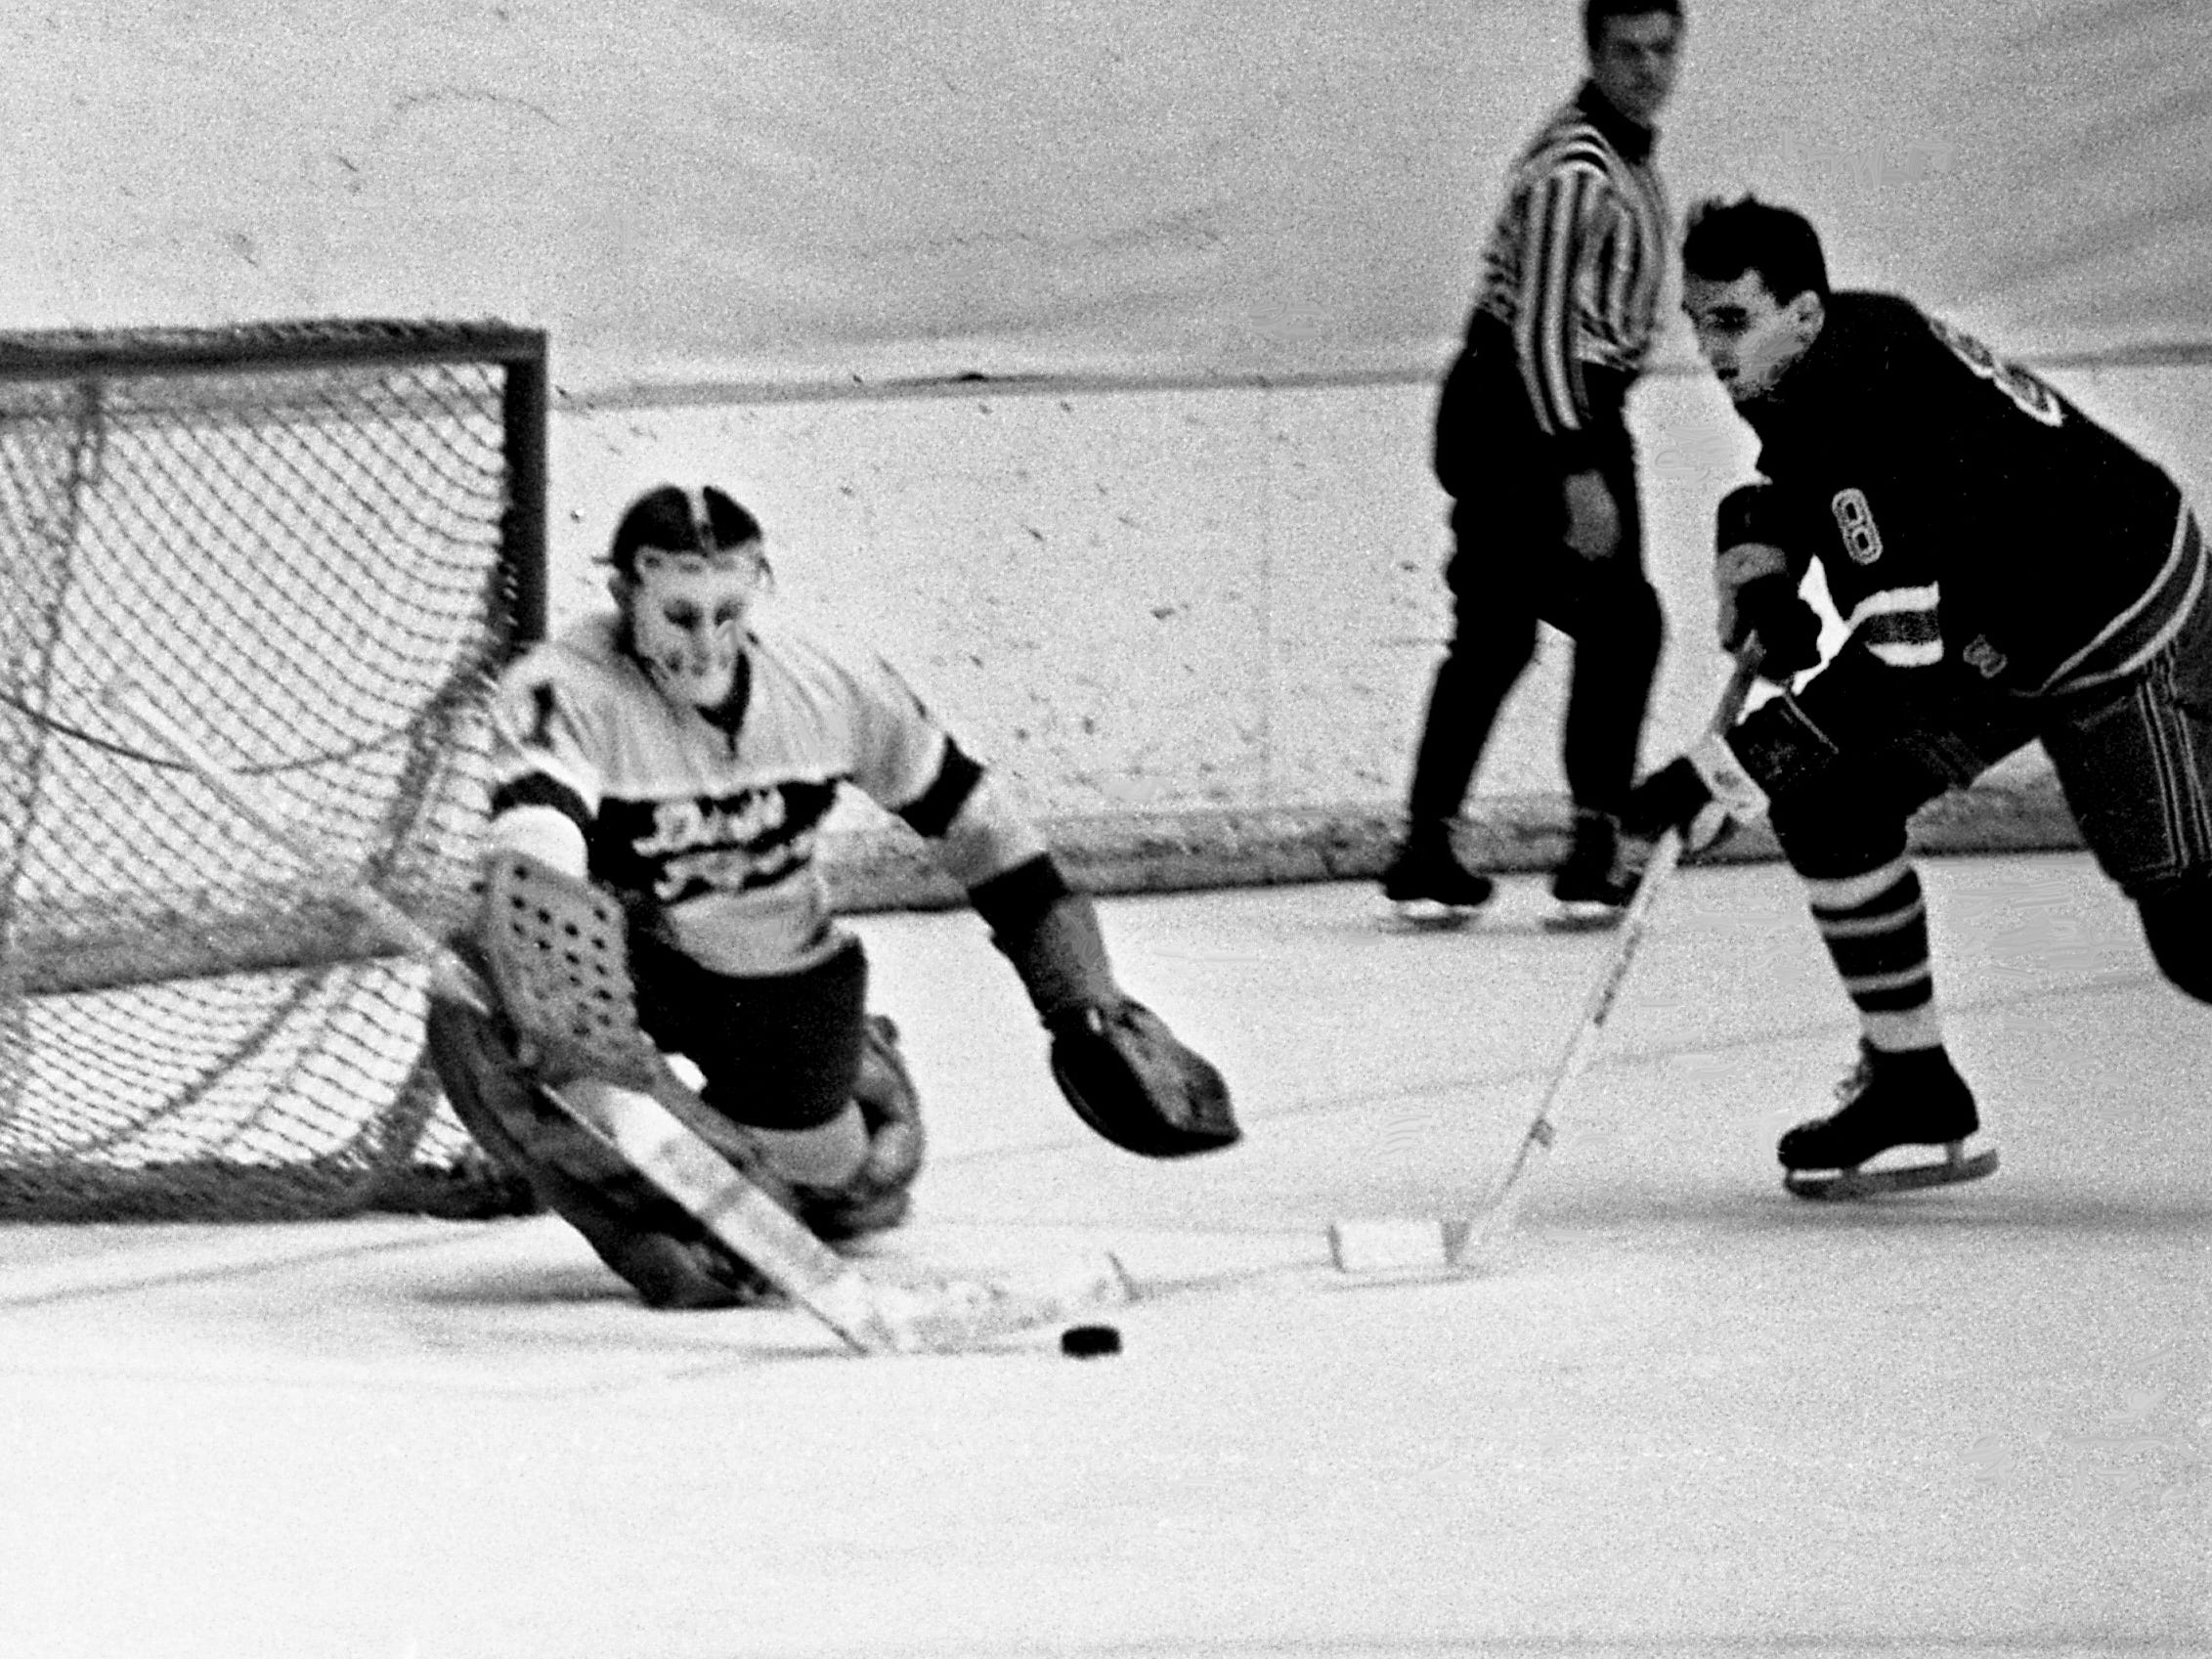 Nashville Dixie Flyers goalie Duffy Lewis clears the puck as a Salem Rebels player moves in. The Flyers defeated Salem 4-2 before 2,847 fans at Municipal Auditorium on Jan. 11, 1969.